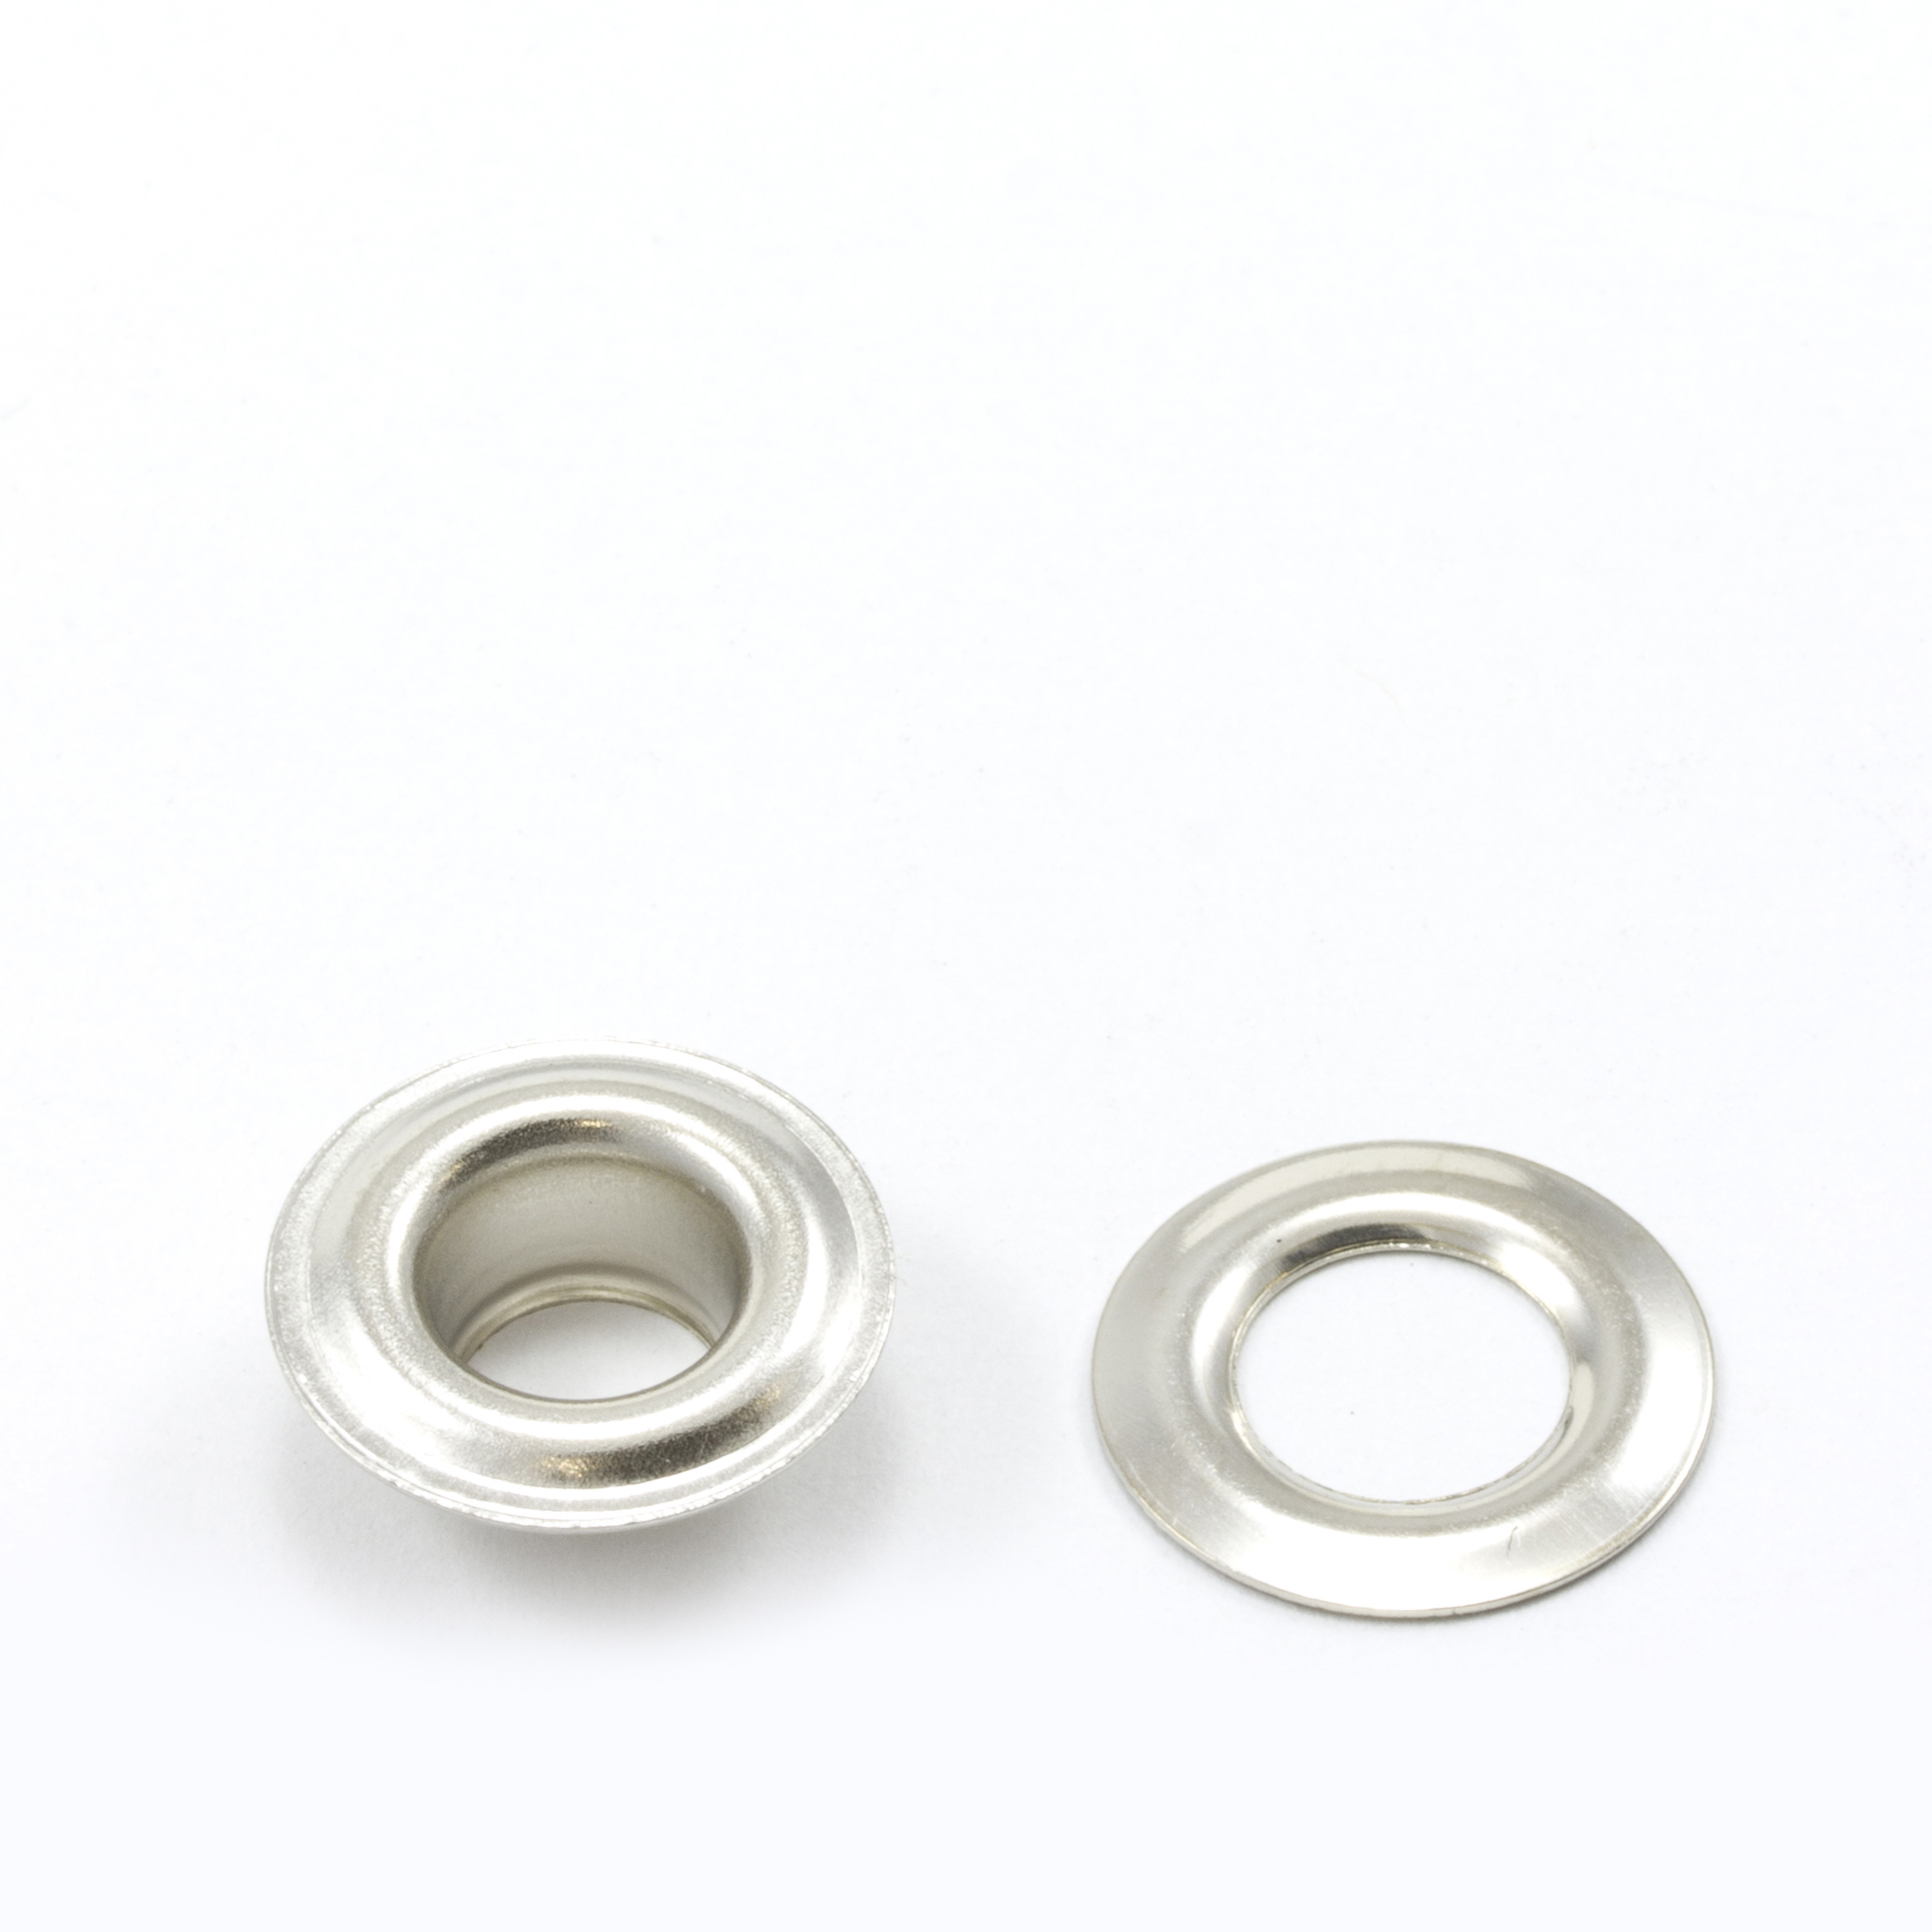 Thumbnail Grommet with Plain Washer #0 Brass Nickel Plated 1/4 1